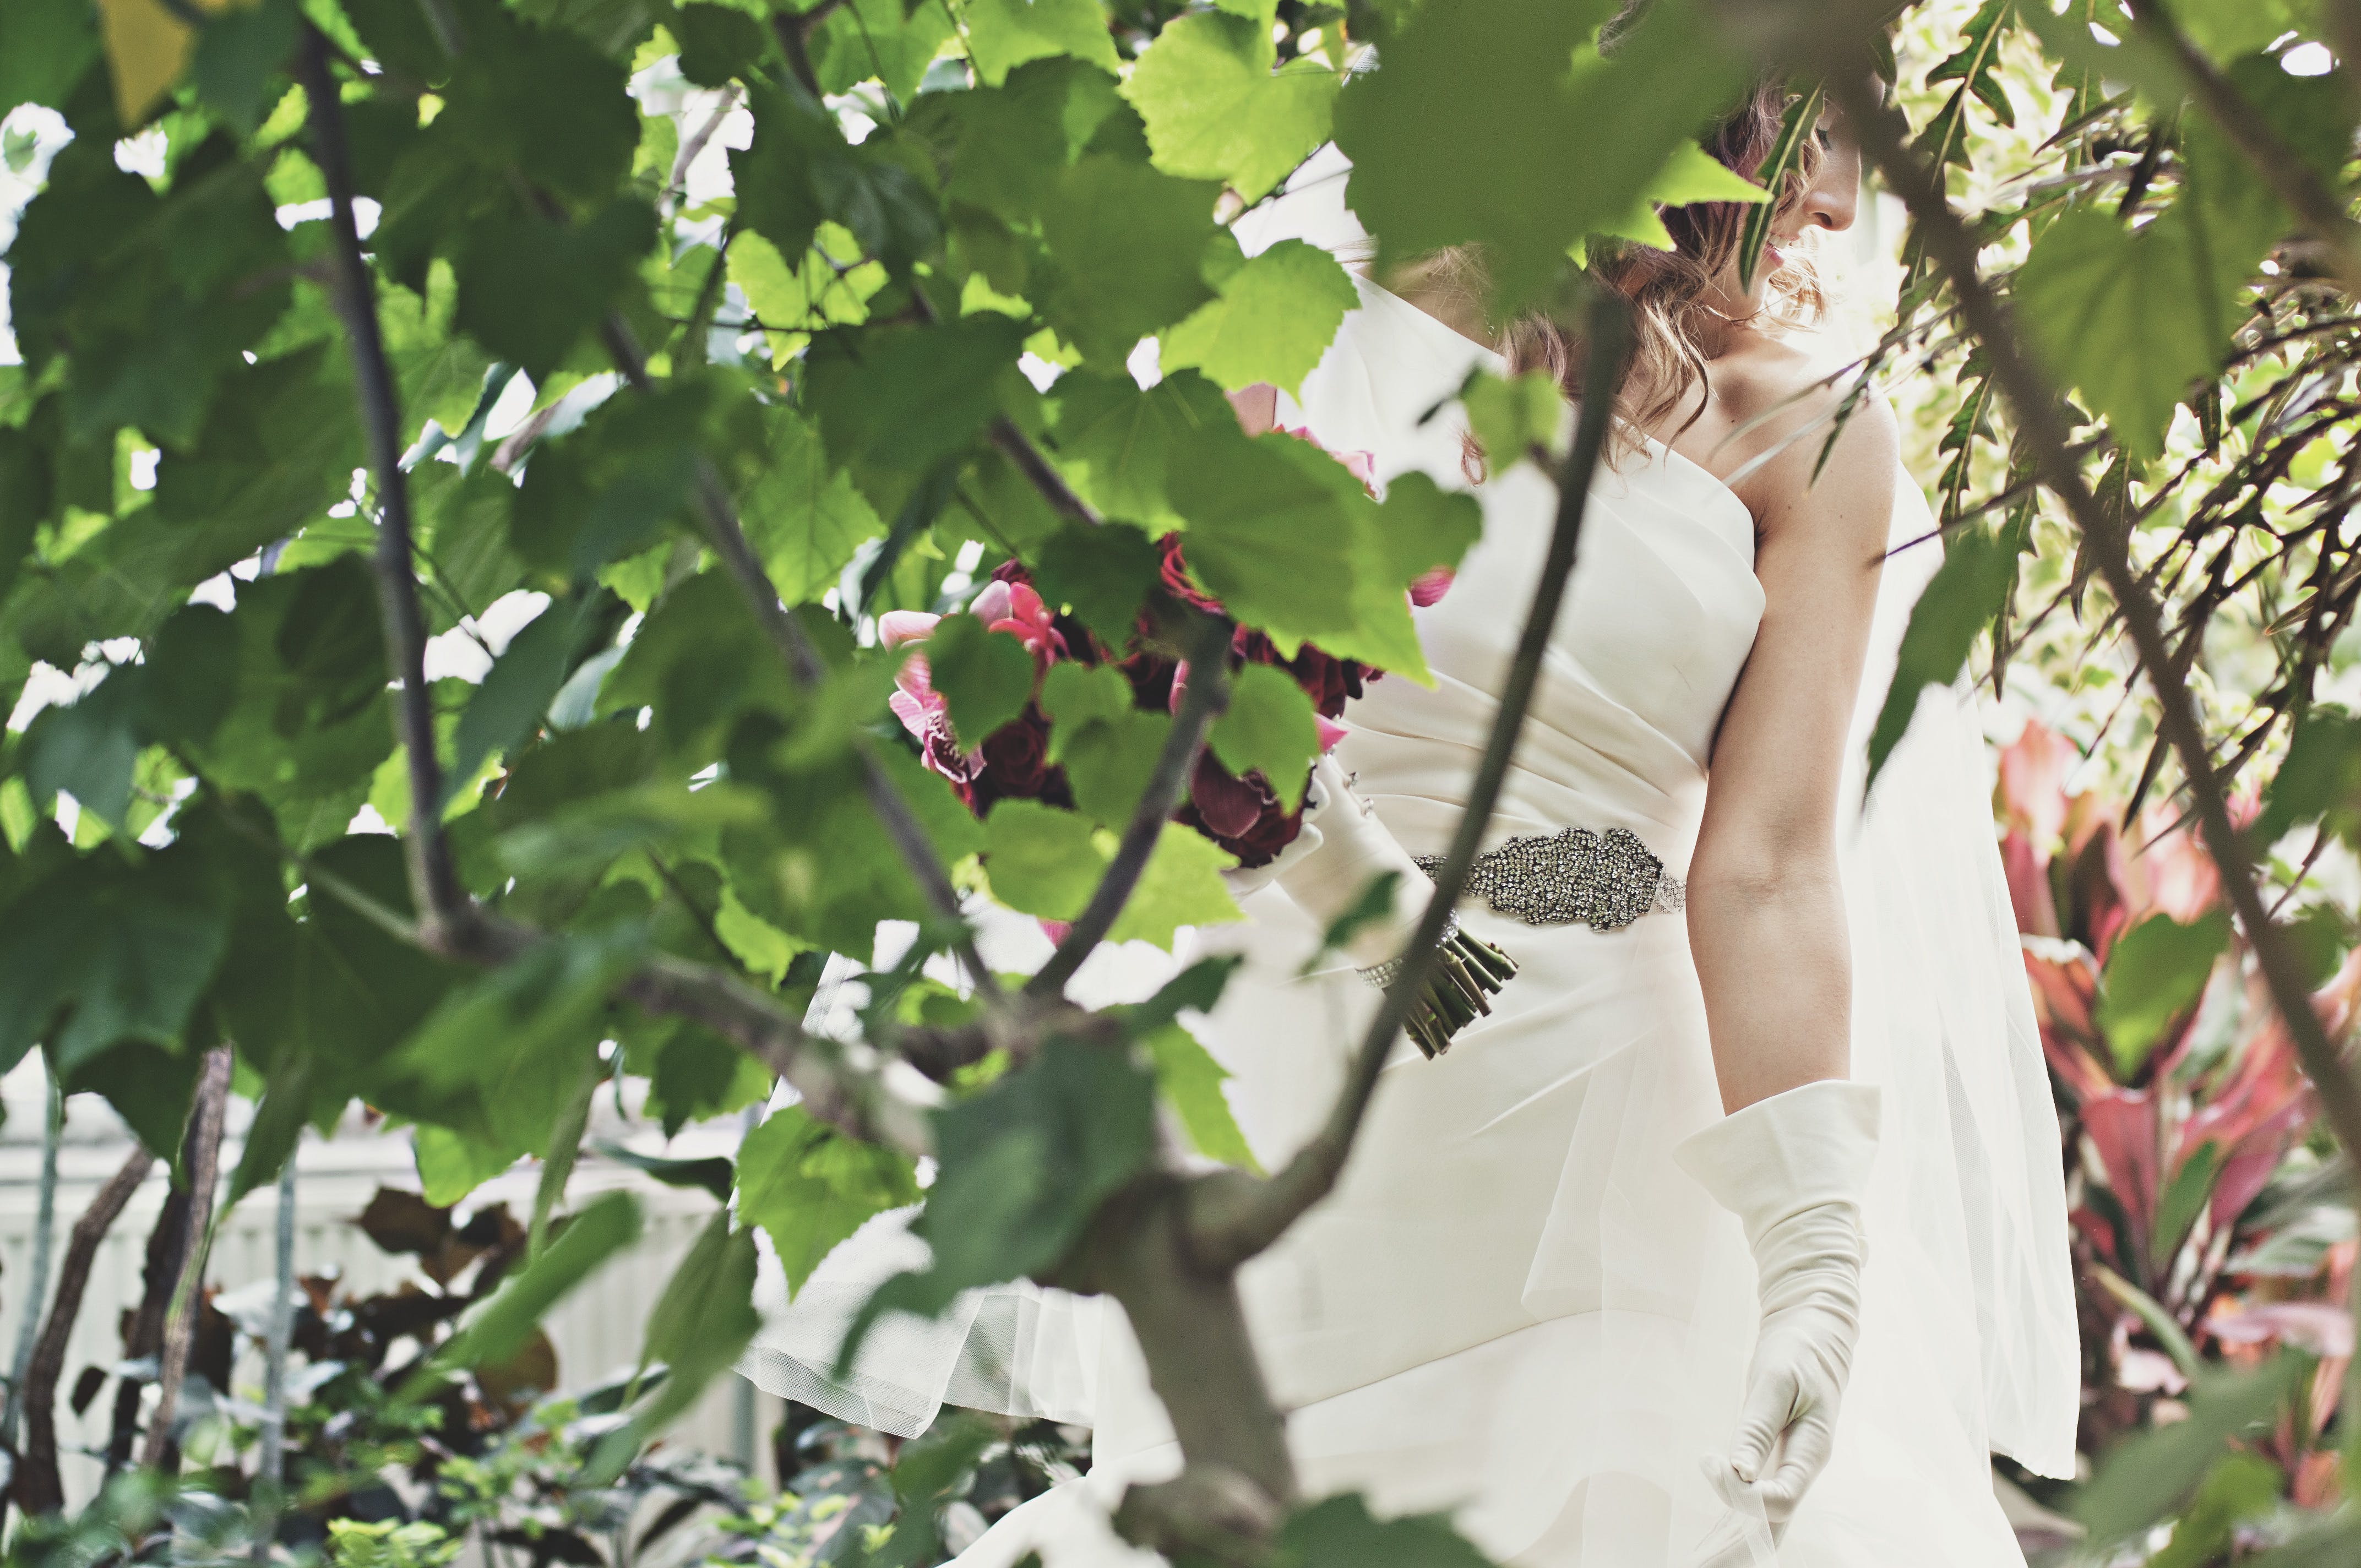 Woman Wearing White Wedding Dress Near Green Trees